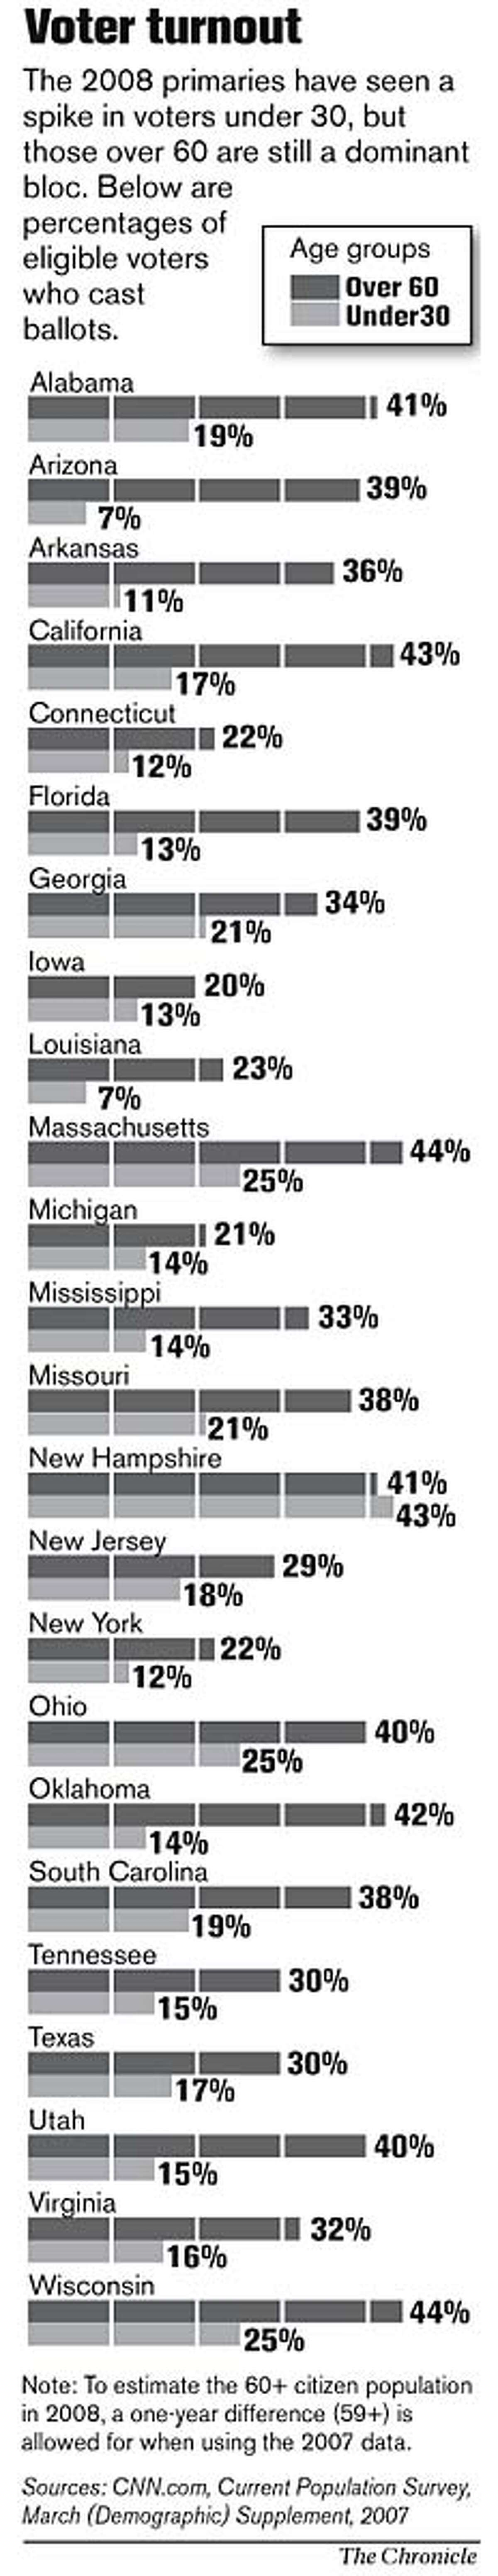 Voter Turnout. Chronicle Graphic